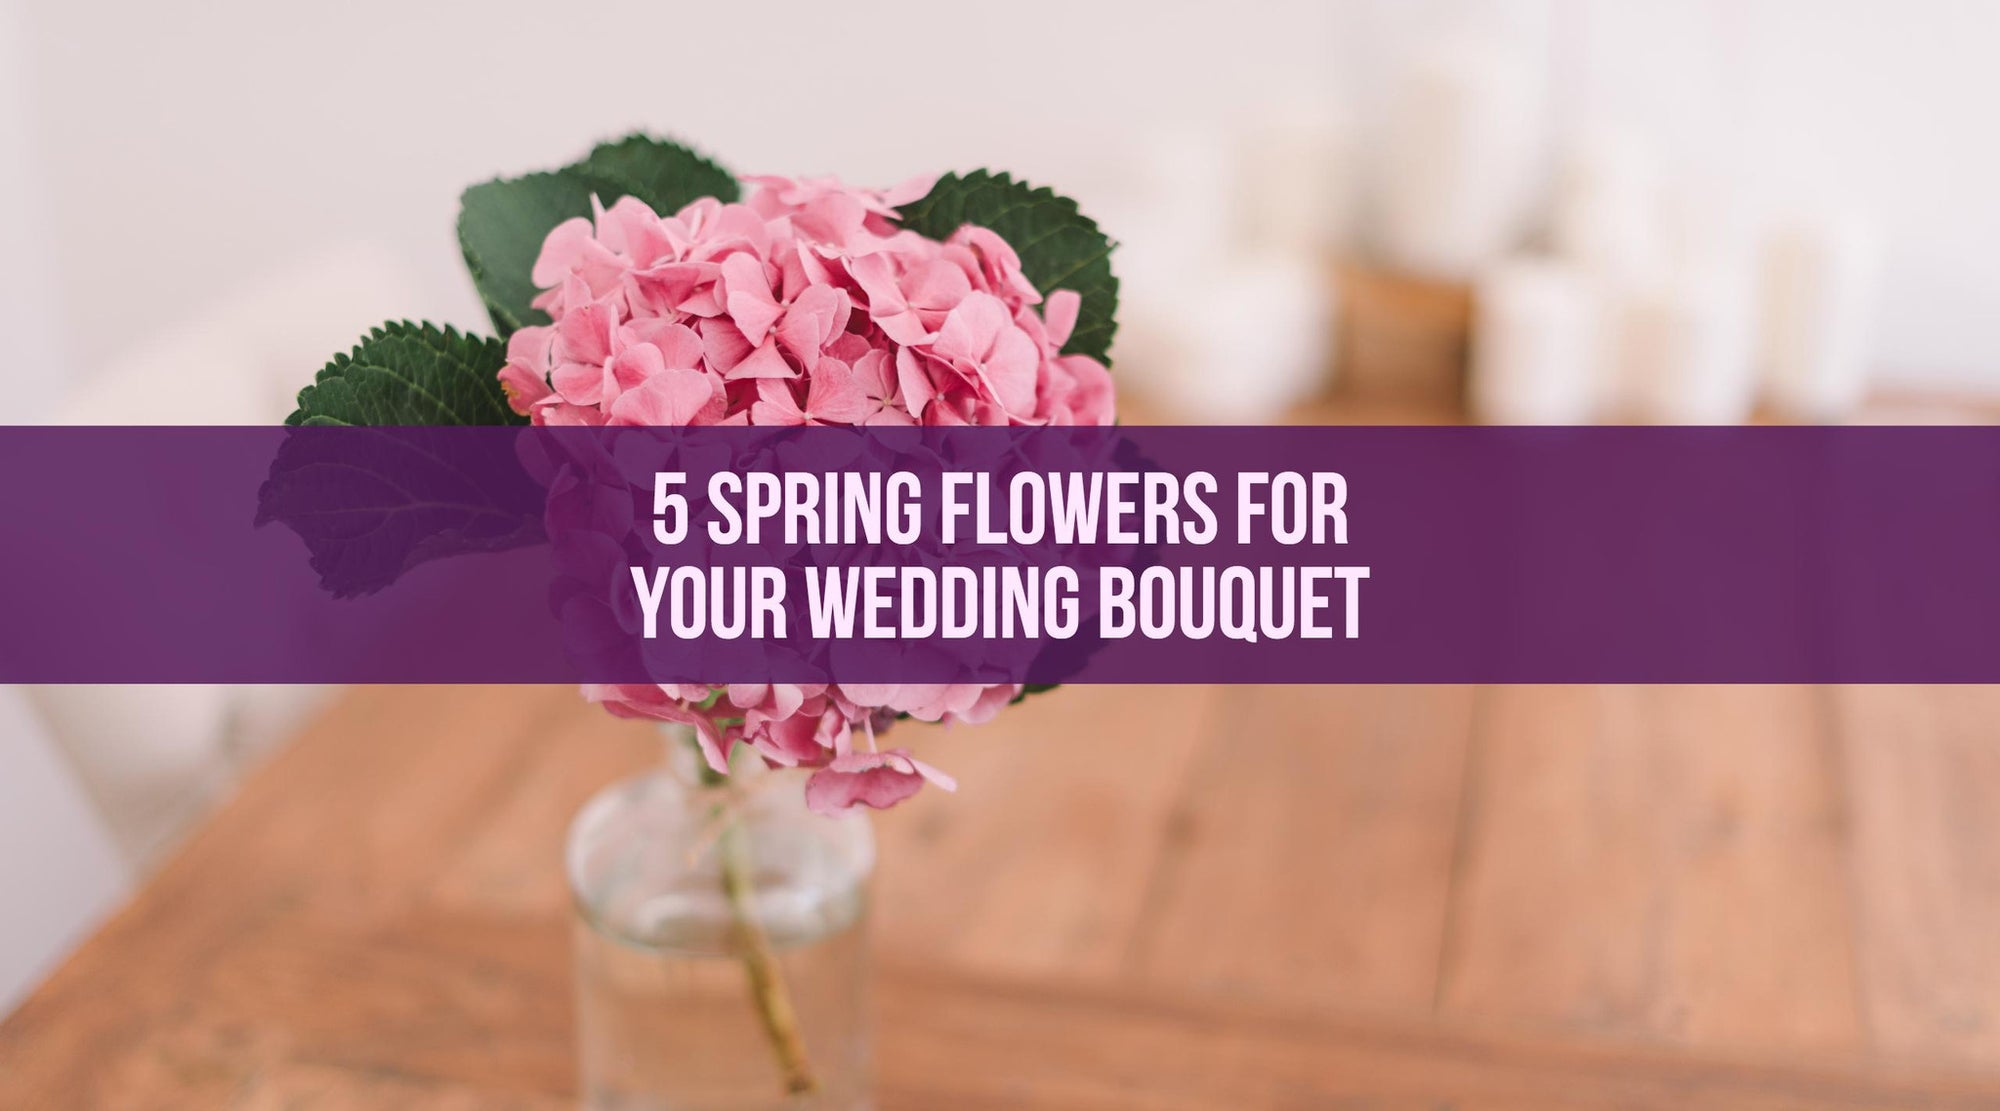 5 Spring Flowers for Your Wedding Bouquet